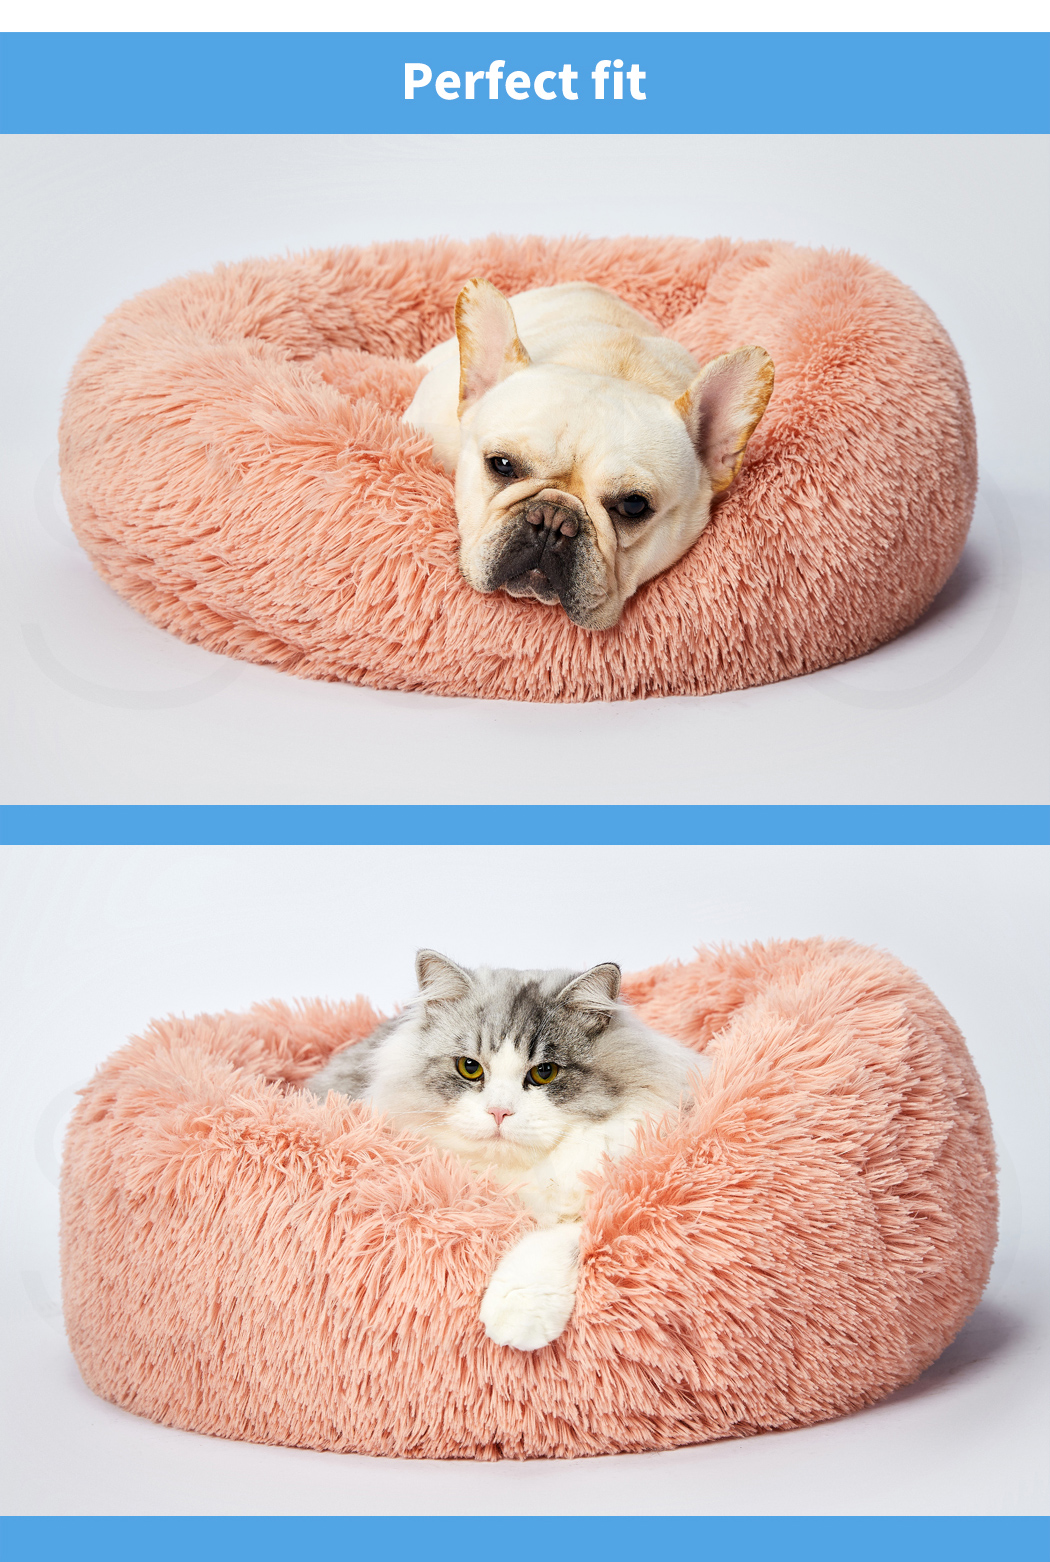 thumbnail 52 - PaWz Dog Calming Bed Cat Cave Pet Nest Soft Plush Warm Comfy Kennel Extra Large